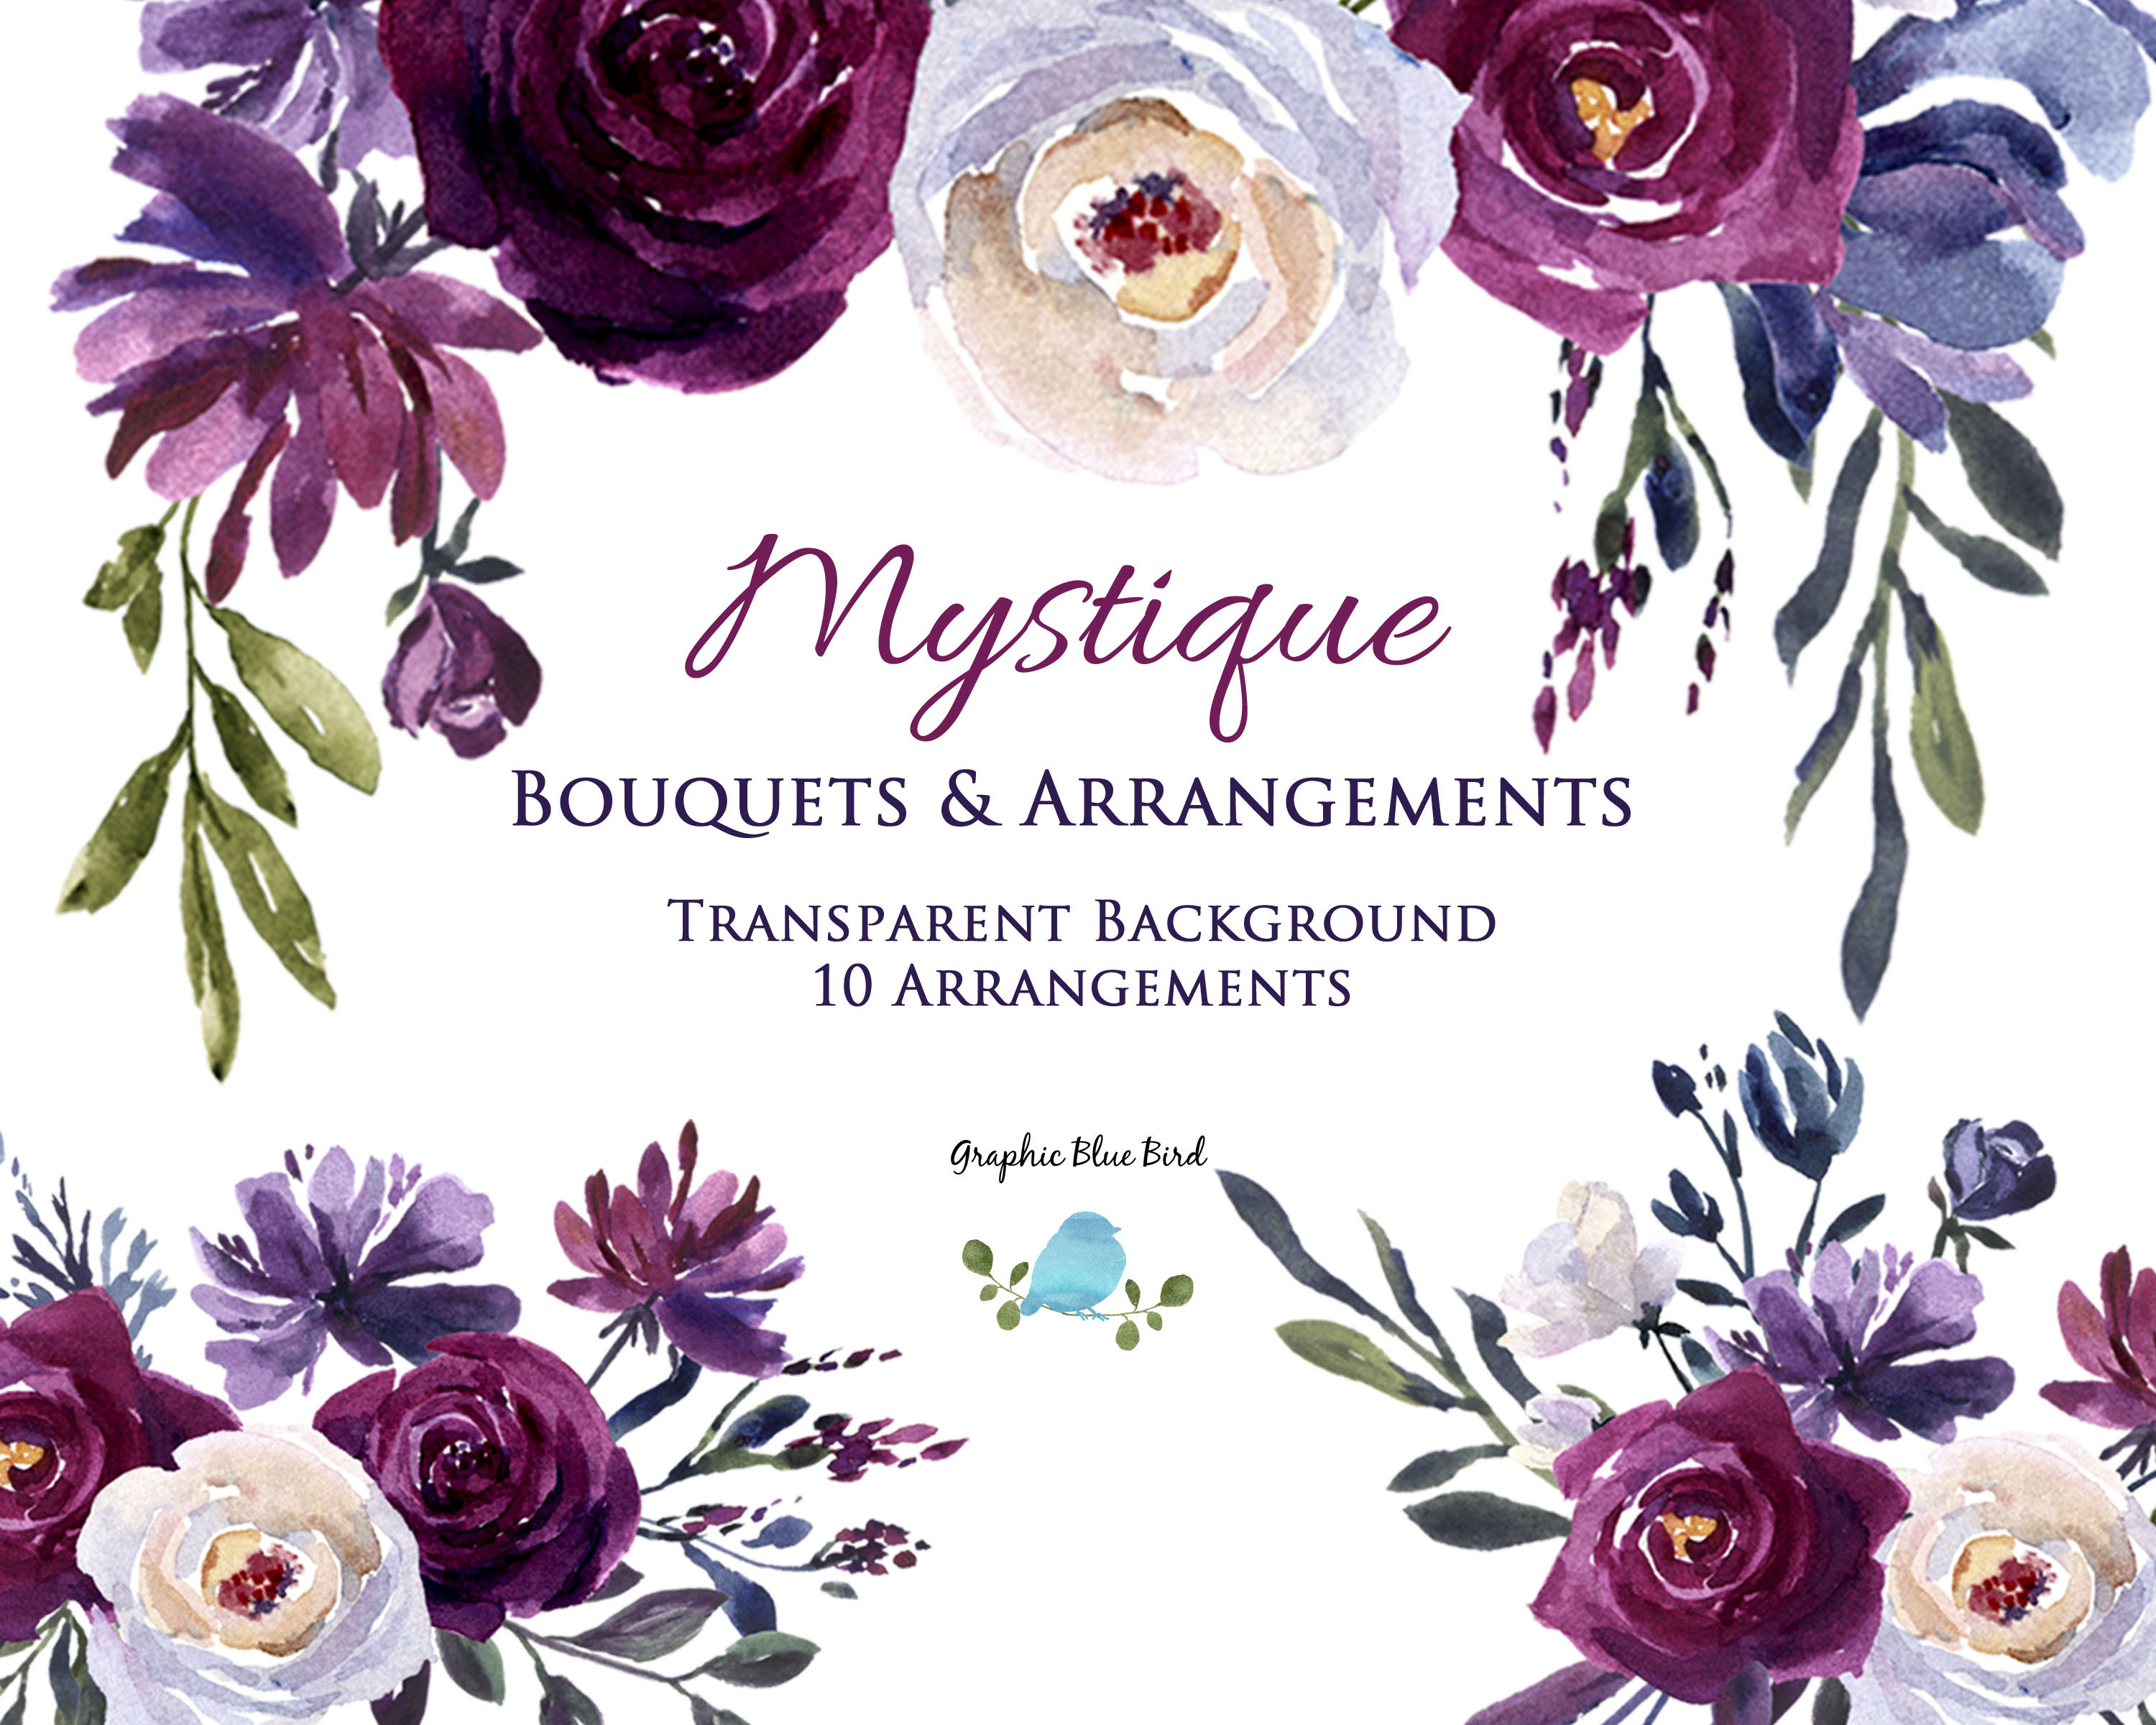 watercolor clipart burgundy blue purple and plum flowers in bouquets and arrangements floral drop border design for wedding invitations